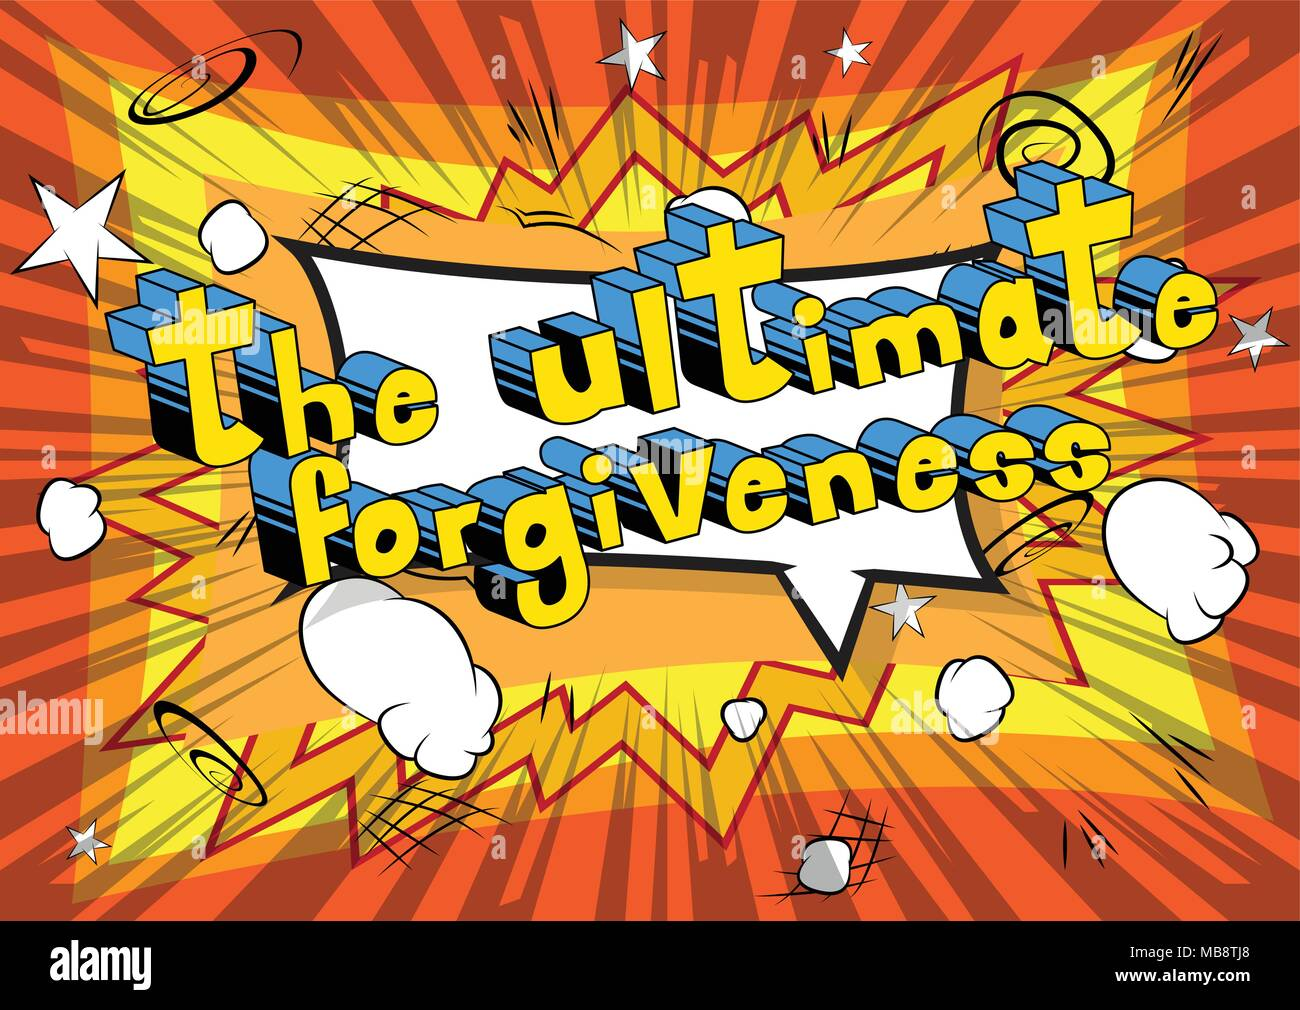 The Ultimate Forgiveness - Comic book style phrase on abstract background. - Stock Image